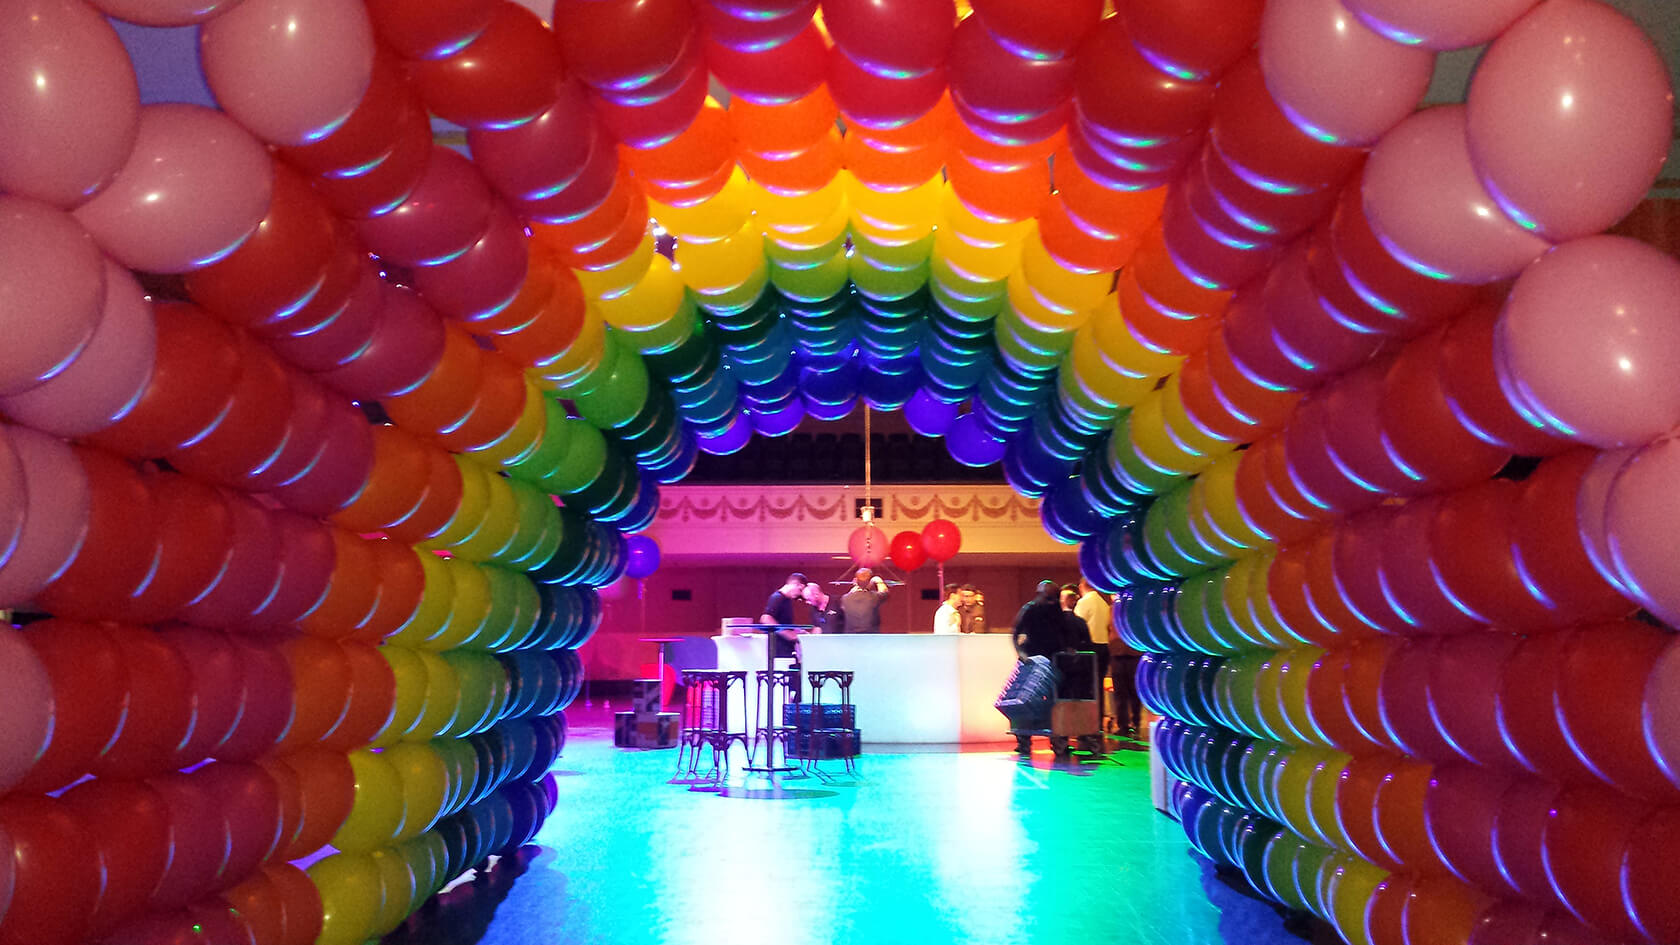 See Our Events! - image CE-36 on https://shivooballoons.com.au